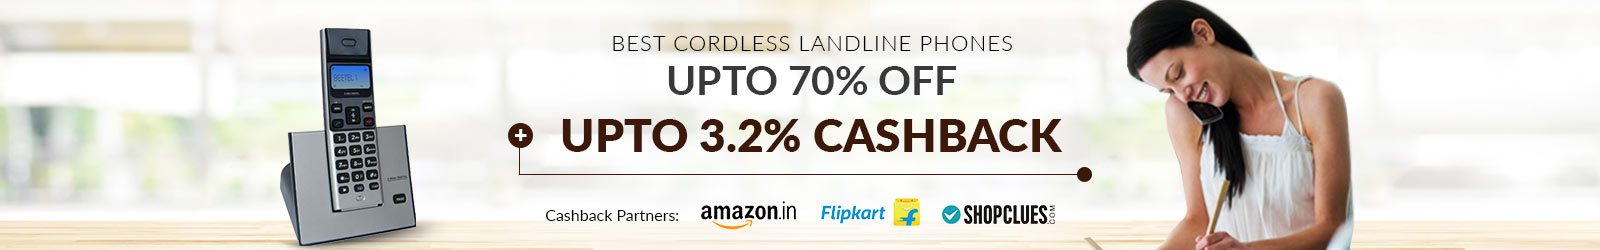 Landline Phone Price: 70% Off | Buy Cordless, Wireless Phone Online